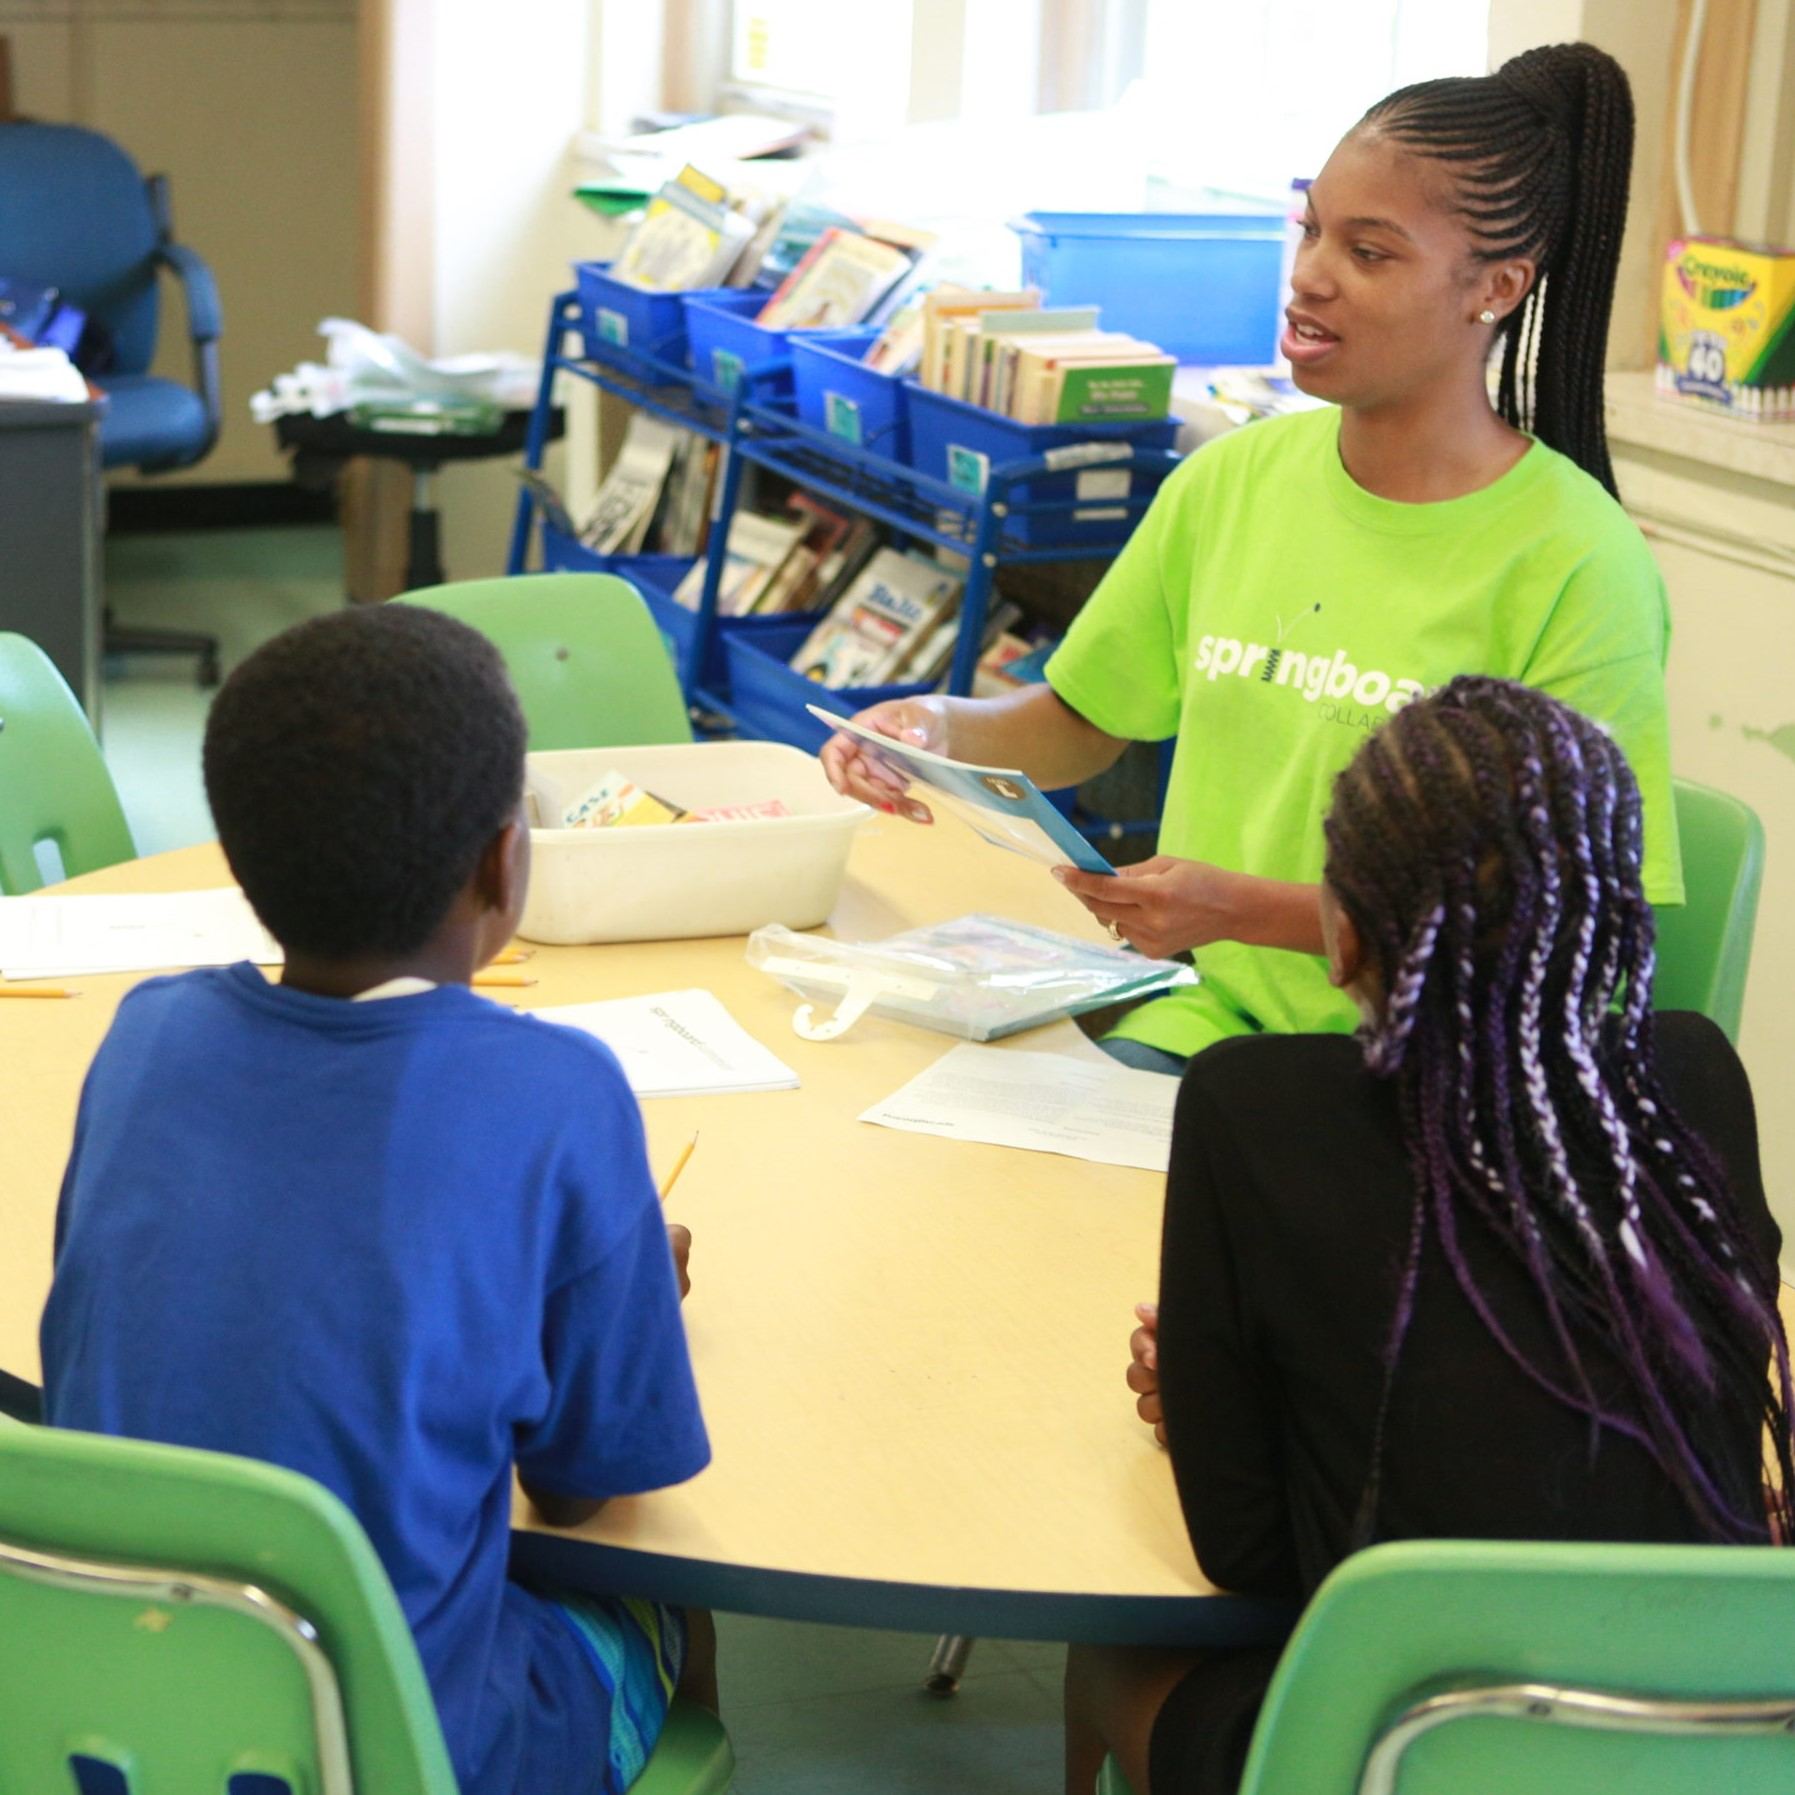 Case study: Baltimore City Public Schools & Springboard support learning at home